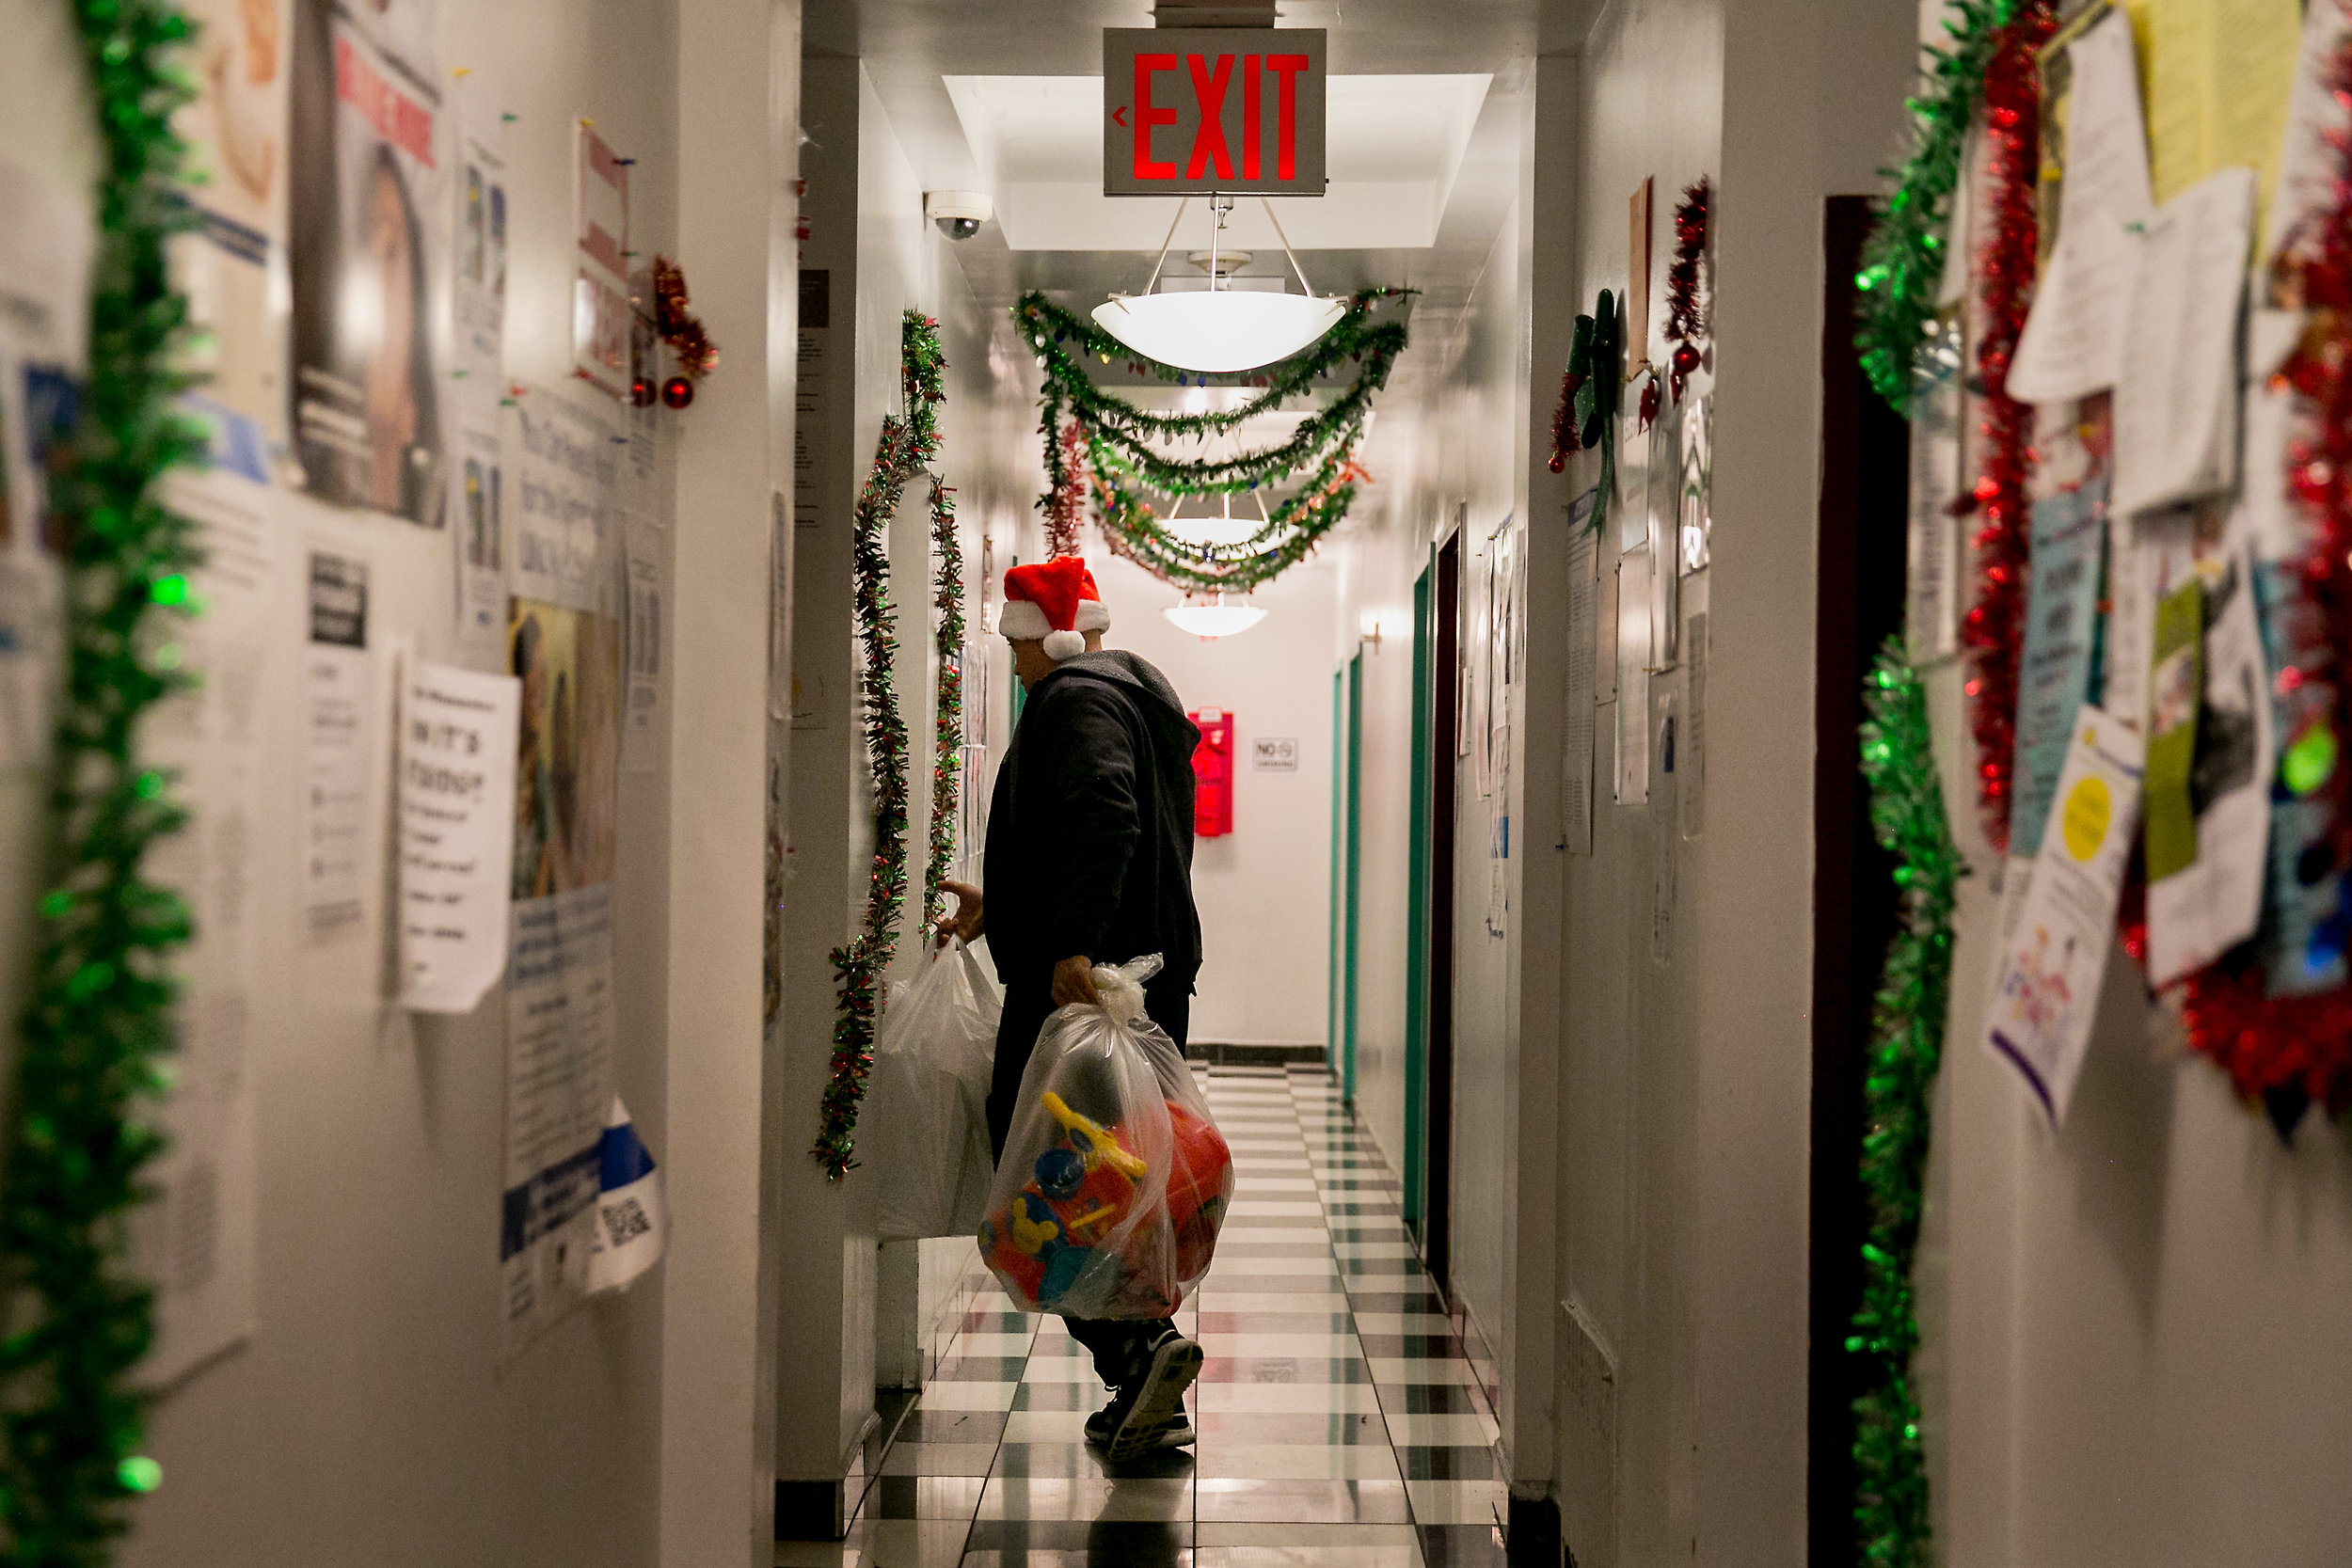 Mover Marc McCauley carries the belongings of Madelyn Brito out of the Kingston Family Residence homeless shelter in Brooklyn, New York.